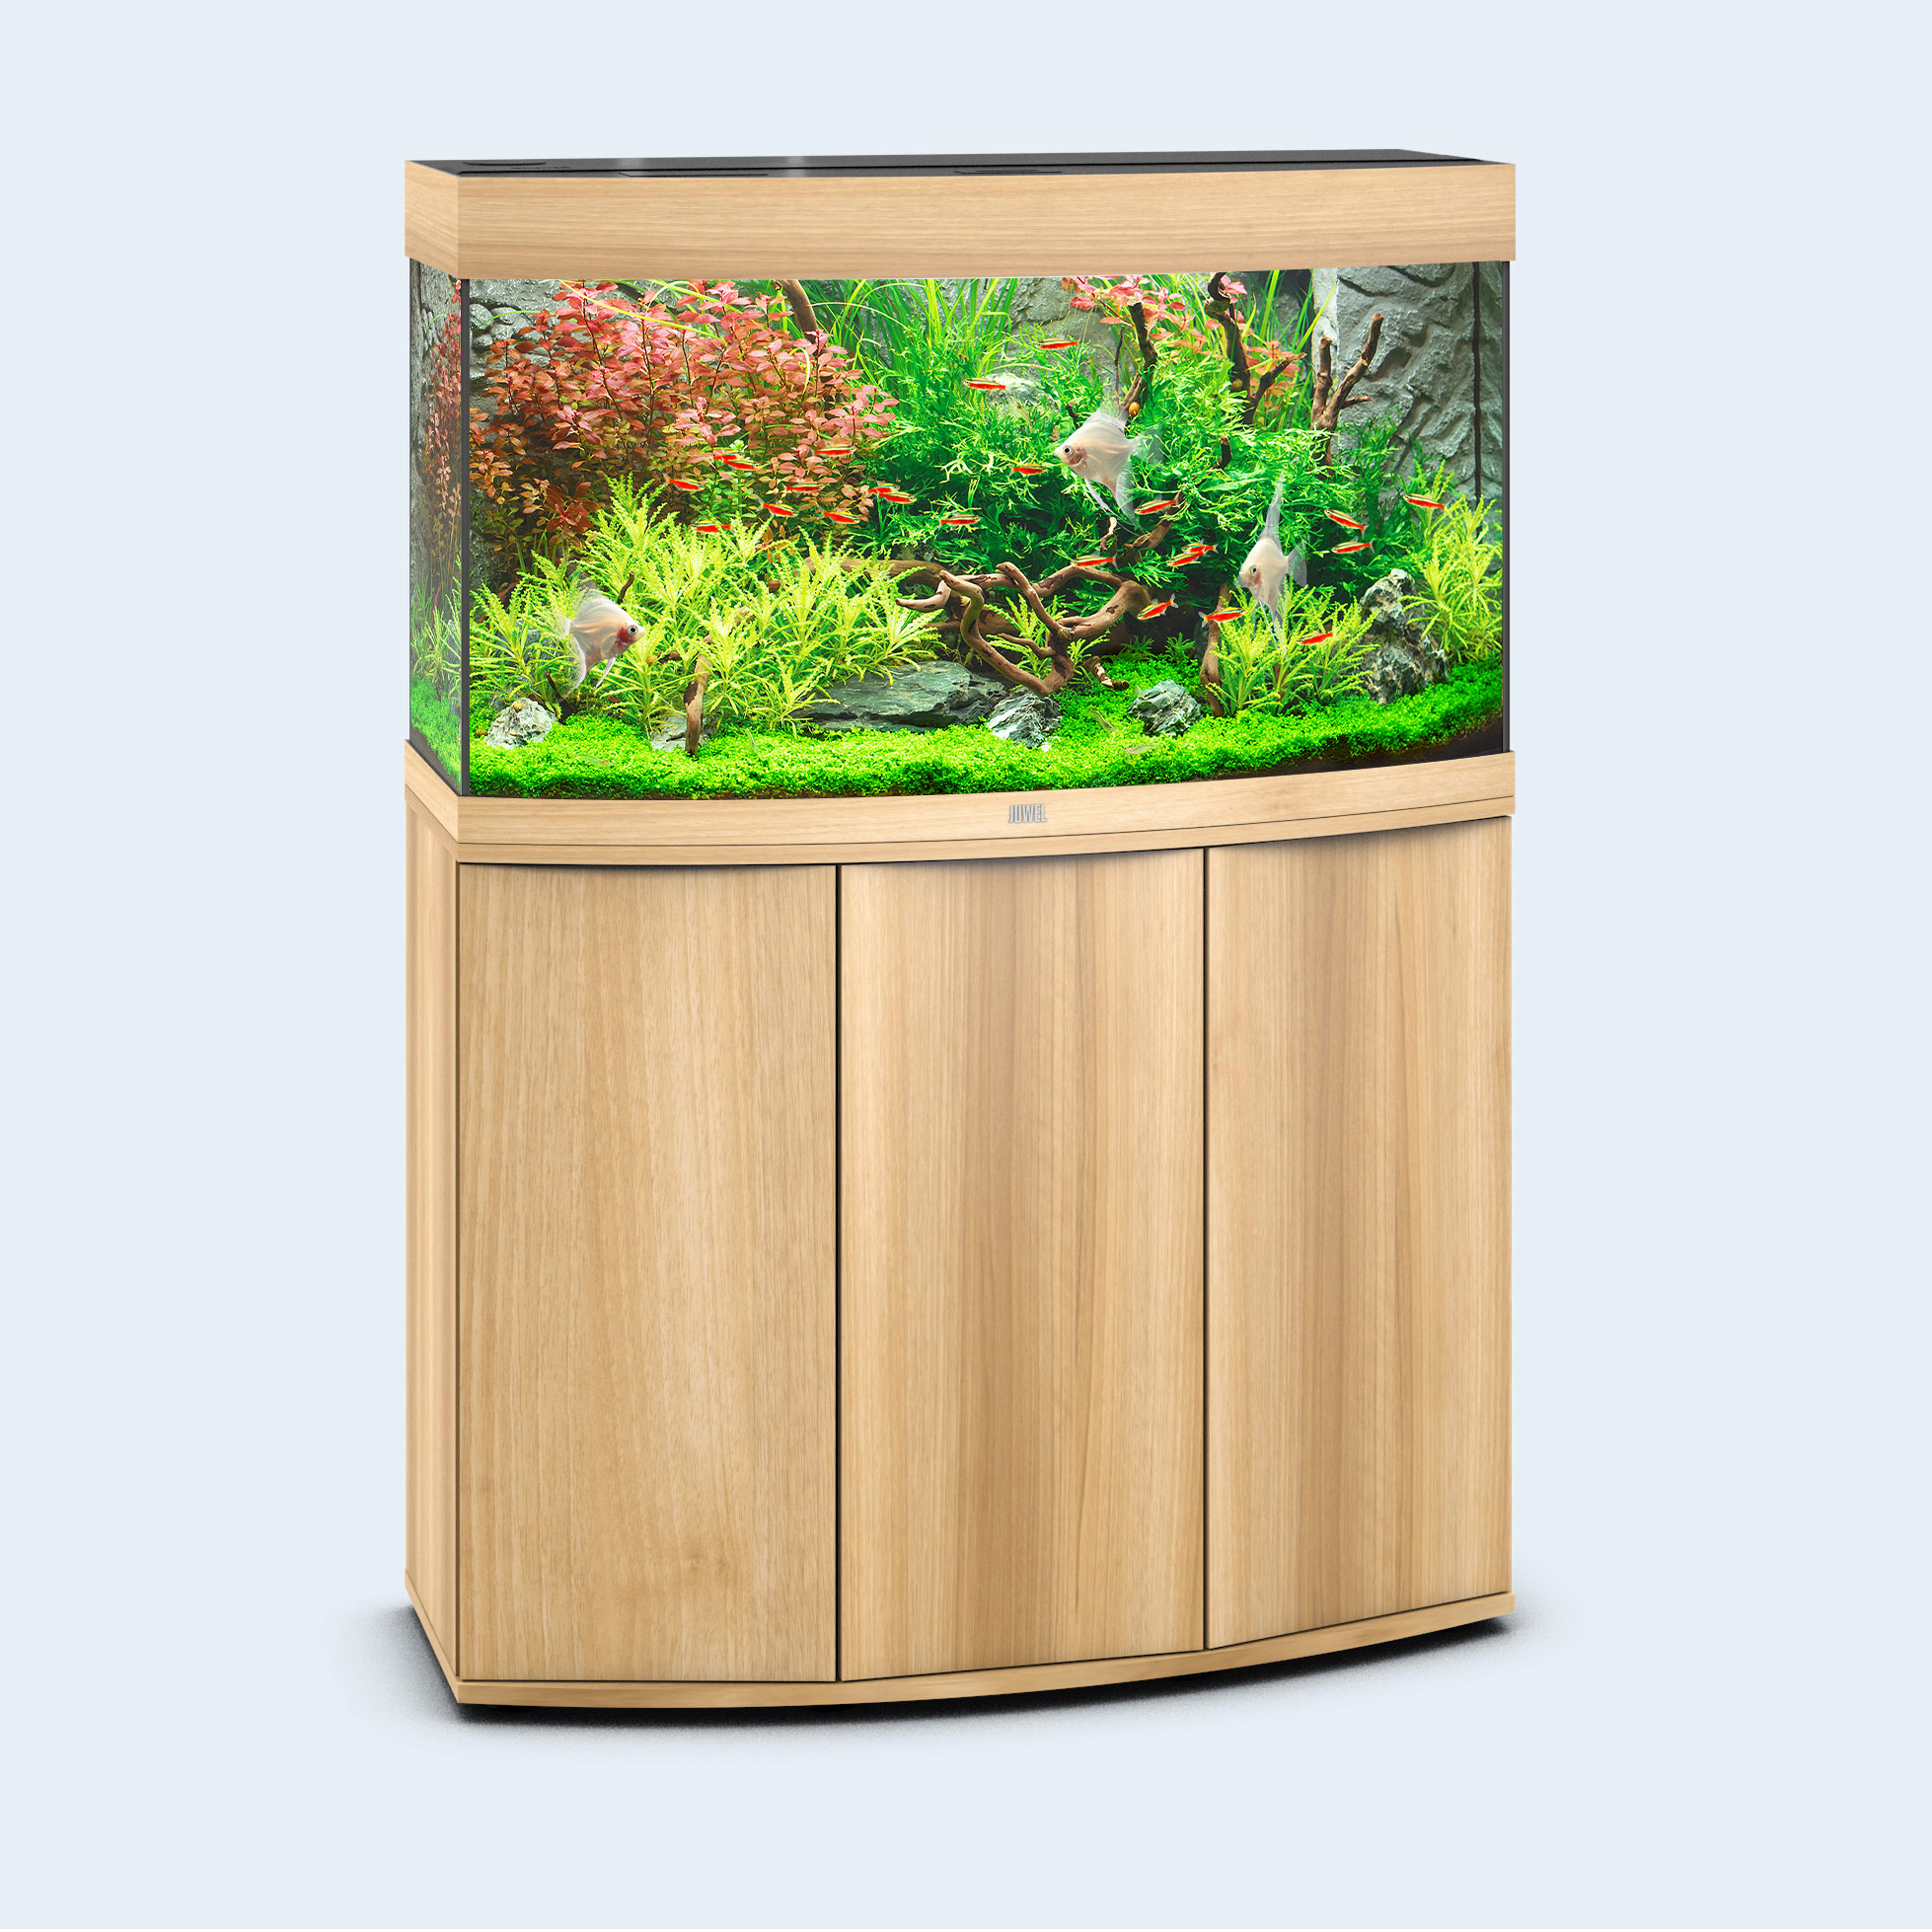 juwel aquarium rio 180 led aquarium dunkles holz bunte. Black Bedroom Furniture Sets. Home Design Ideas